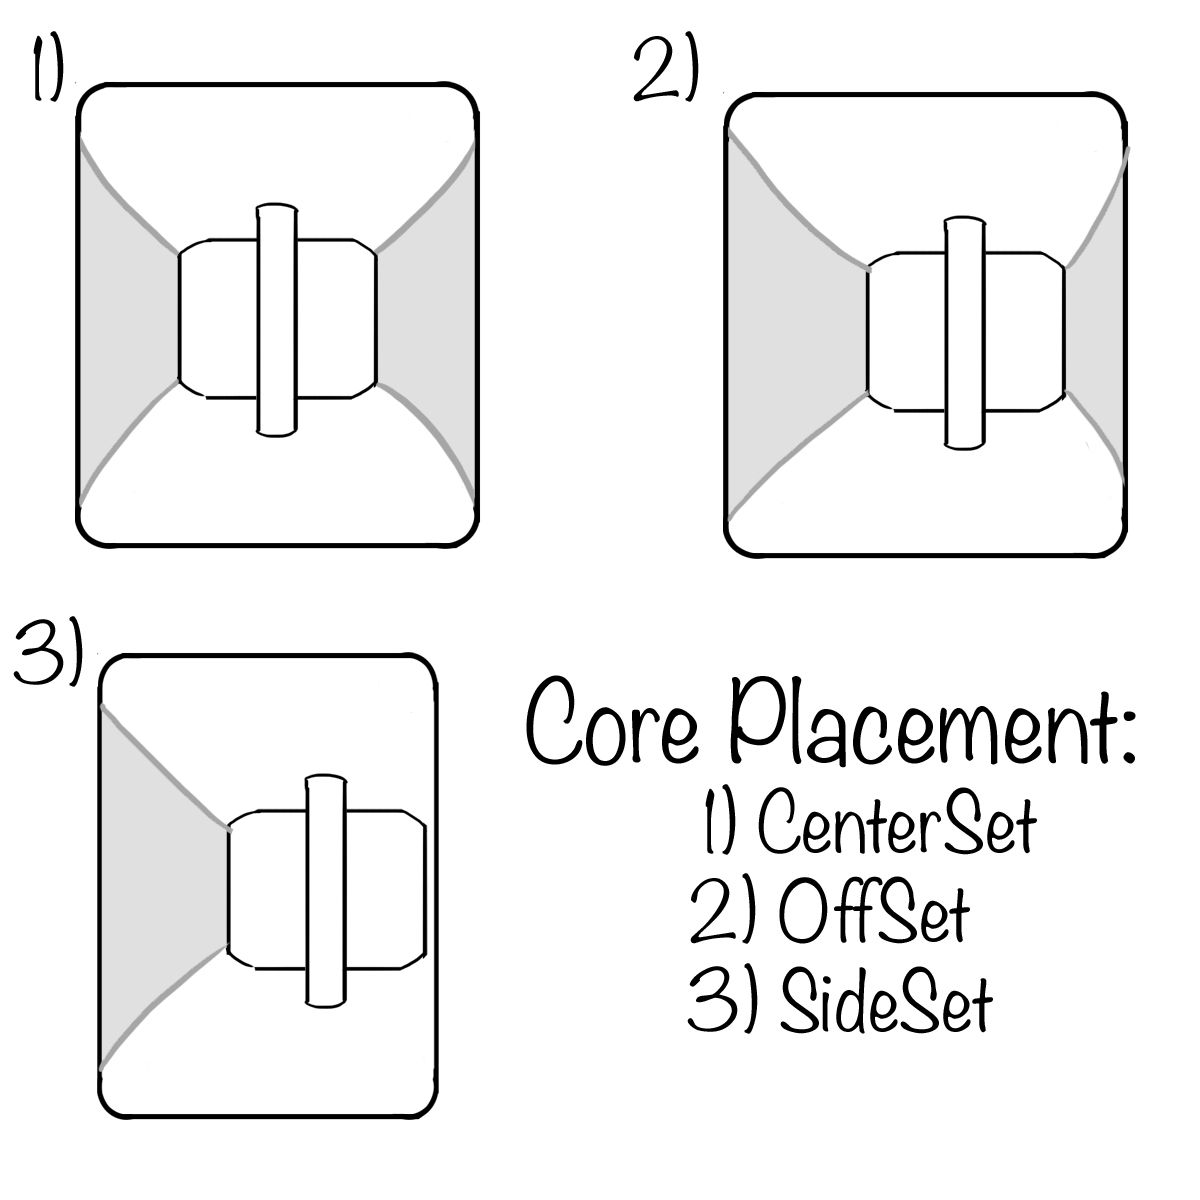 small resolution of diagram of longboard wheel core placement centerset side set and offset